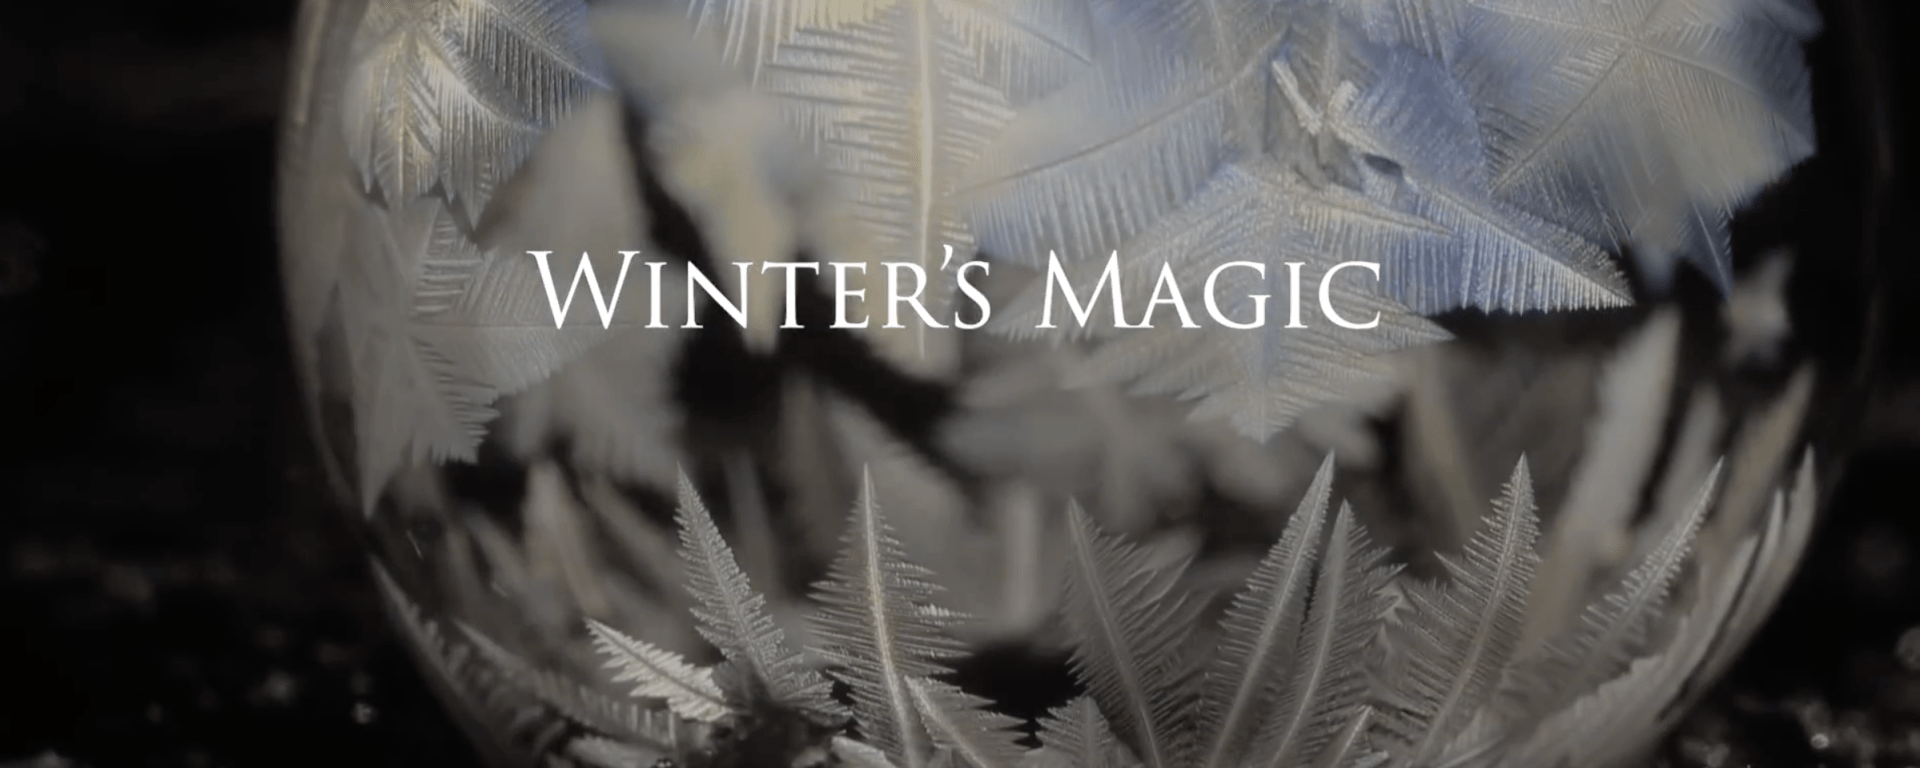 Winter's Magic. Screenshot of the title screen of the gorgeous short film by Don Komarechka https://youtu.be/mLcmeEL2SYs